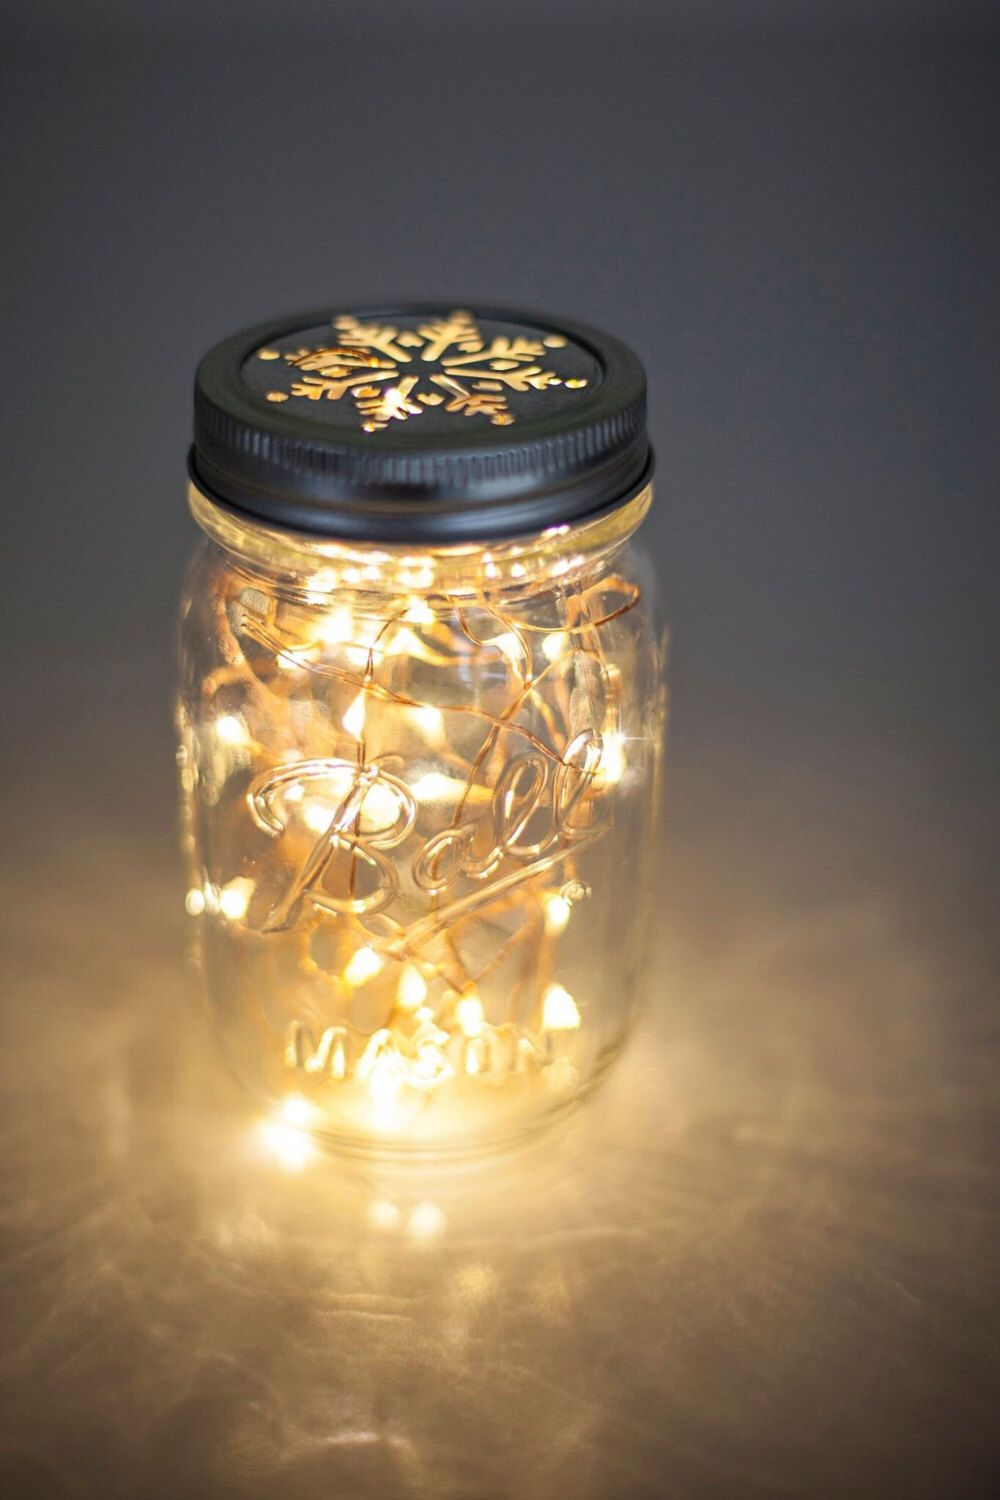 Snowflake Ball Mason Jar Christmas Lights Copper Wire Fairy Lights Christmas Decorations Fairy Jar Uk Seller Christmas Mason Jars Christmas Jars Mason Jars